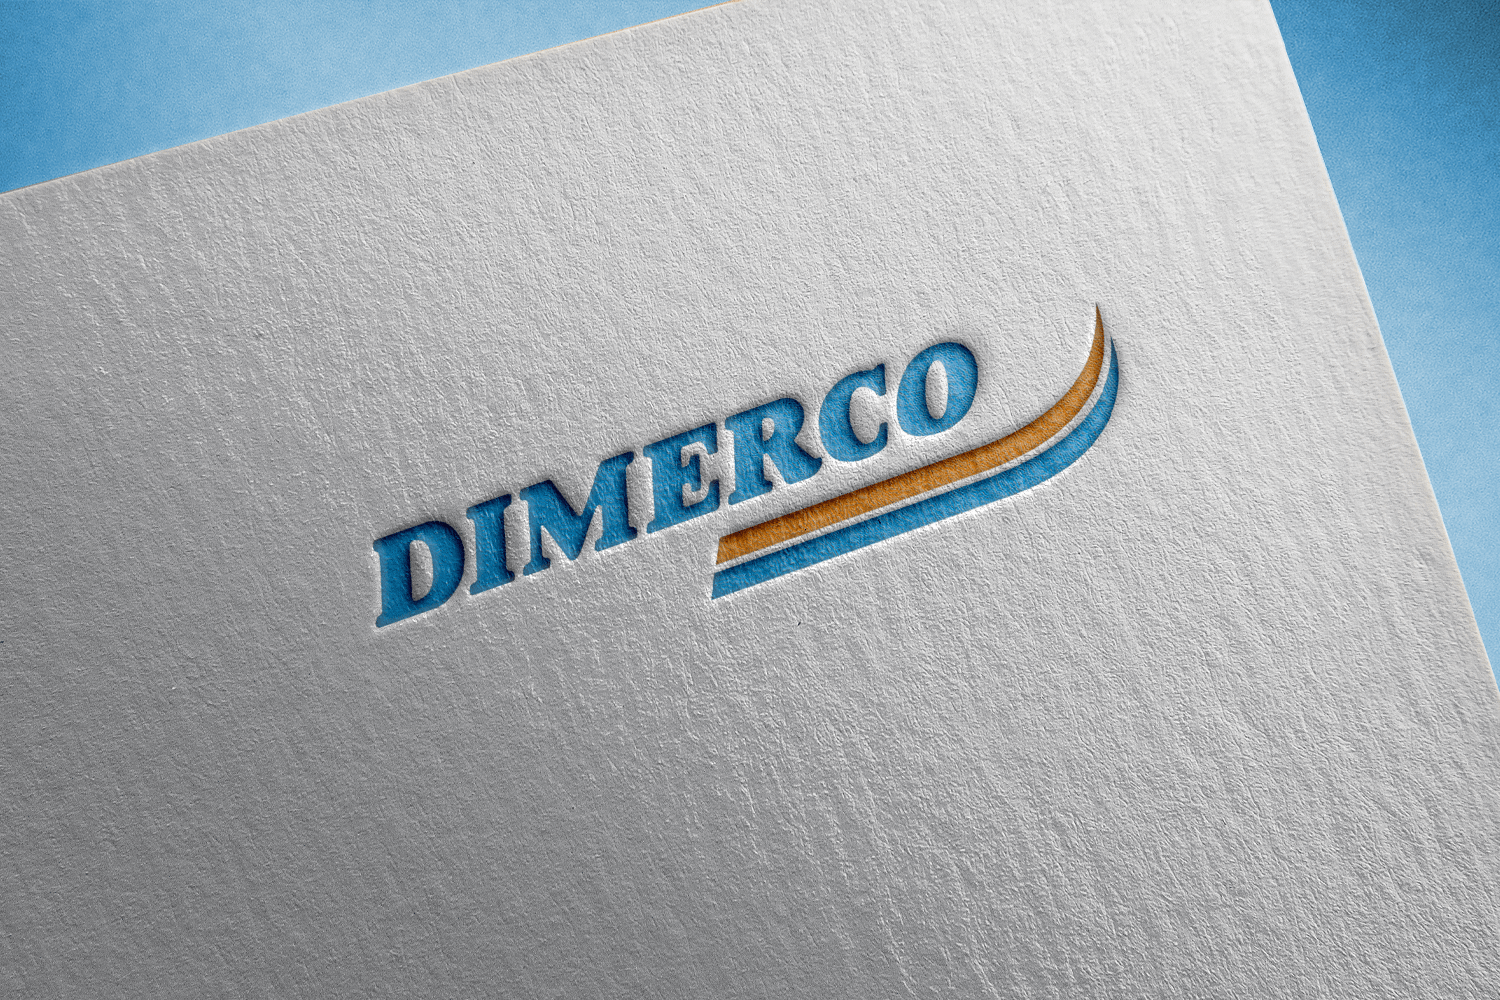 Dimerco Logo For Resources -1